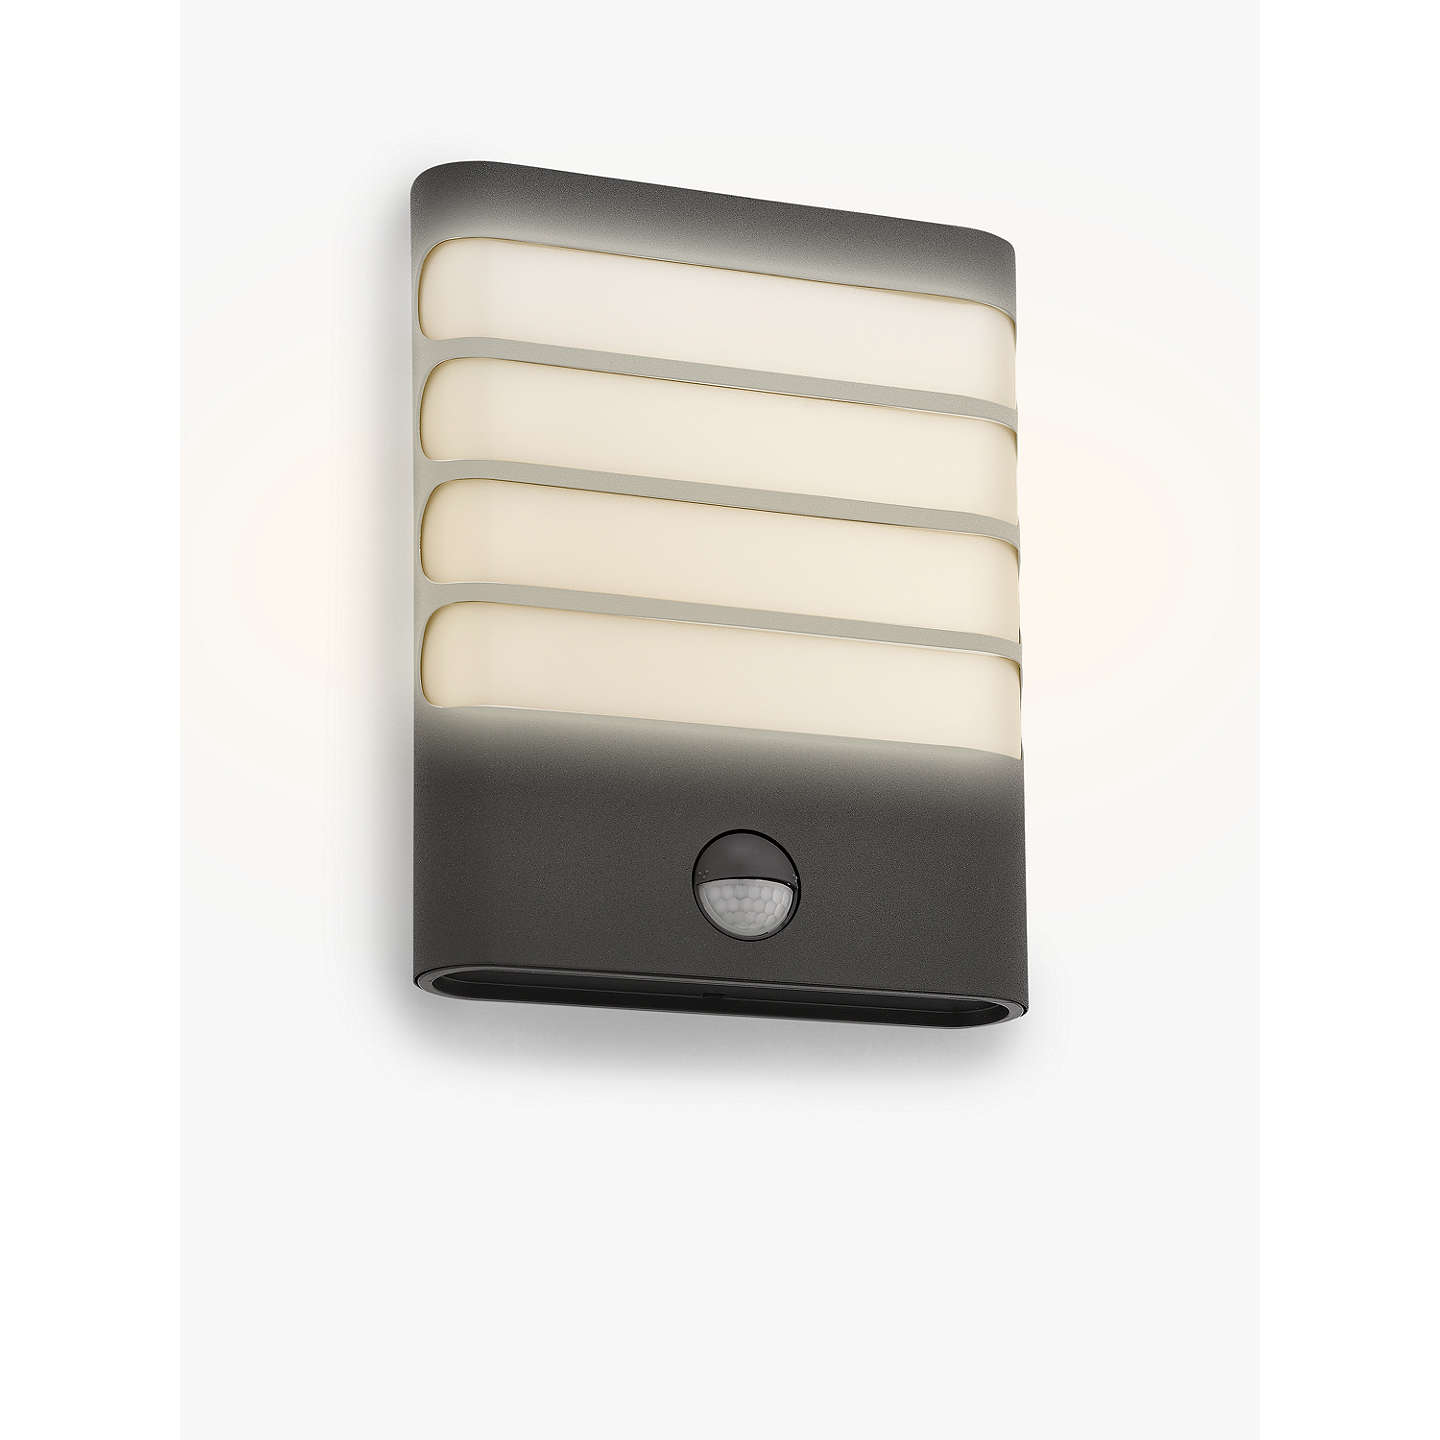 philips mygarden raccoon led outdoor wall light at john lewis. Black Bedroom Furniture Sets. Home Design Ideas